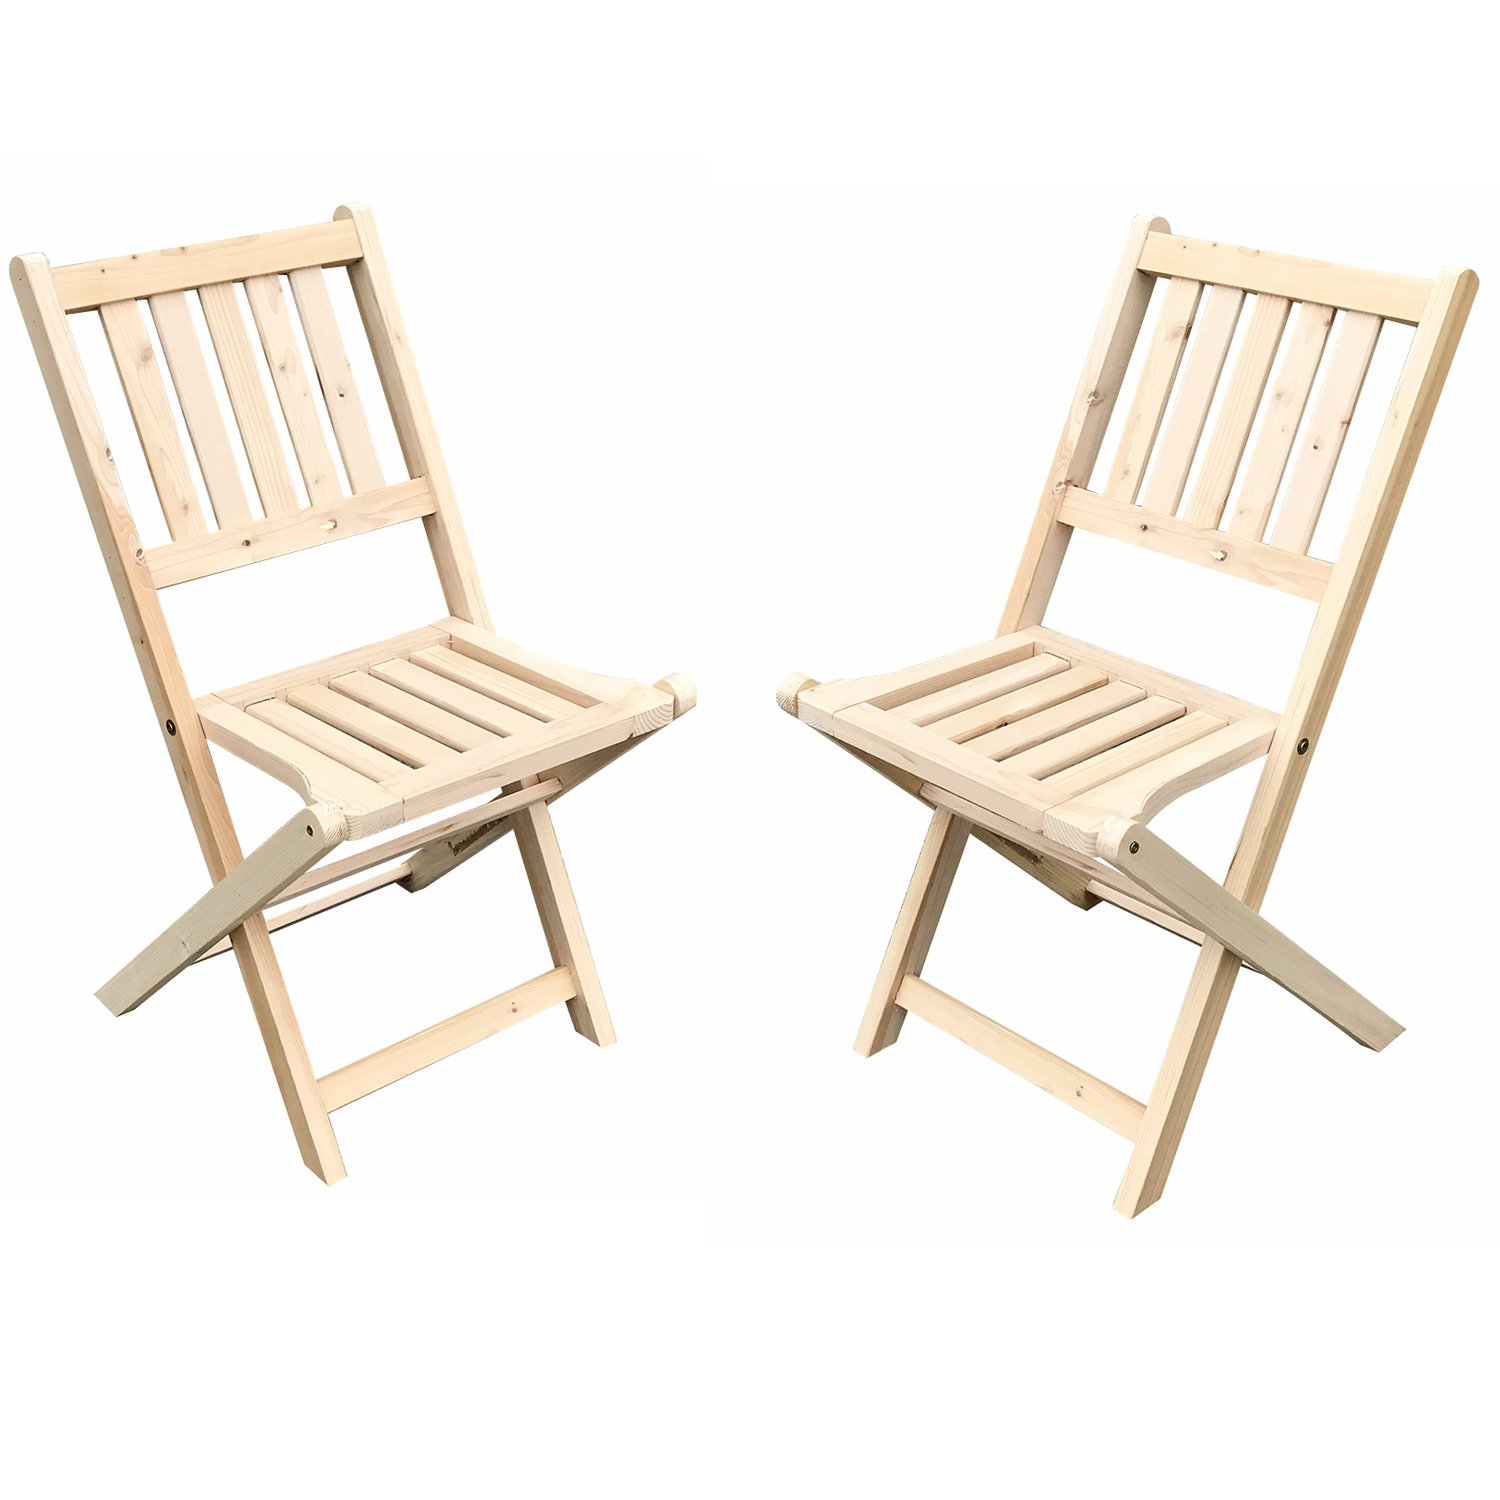 Sliverylake Outdoor Wood Chair and Table Set Folding Patio Bistro (2 Chaises)